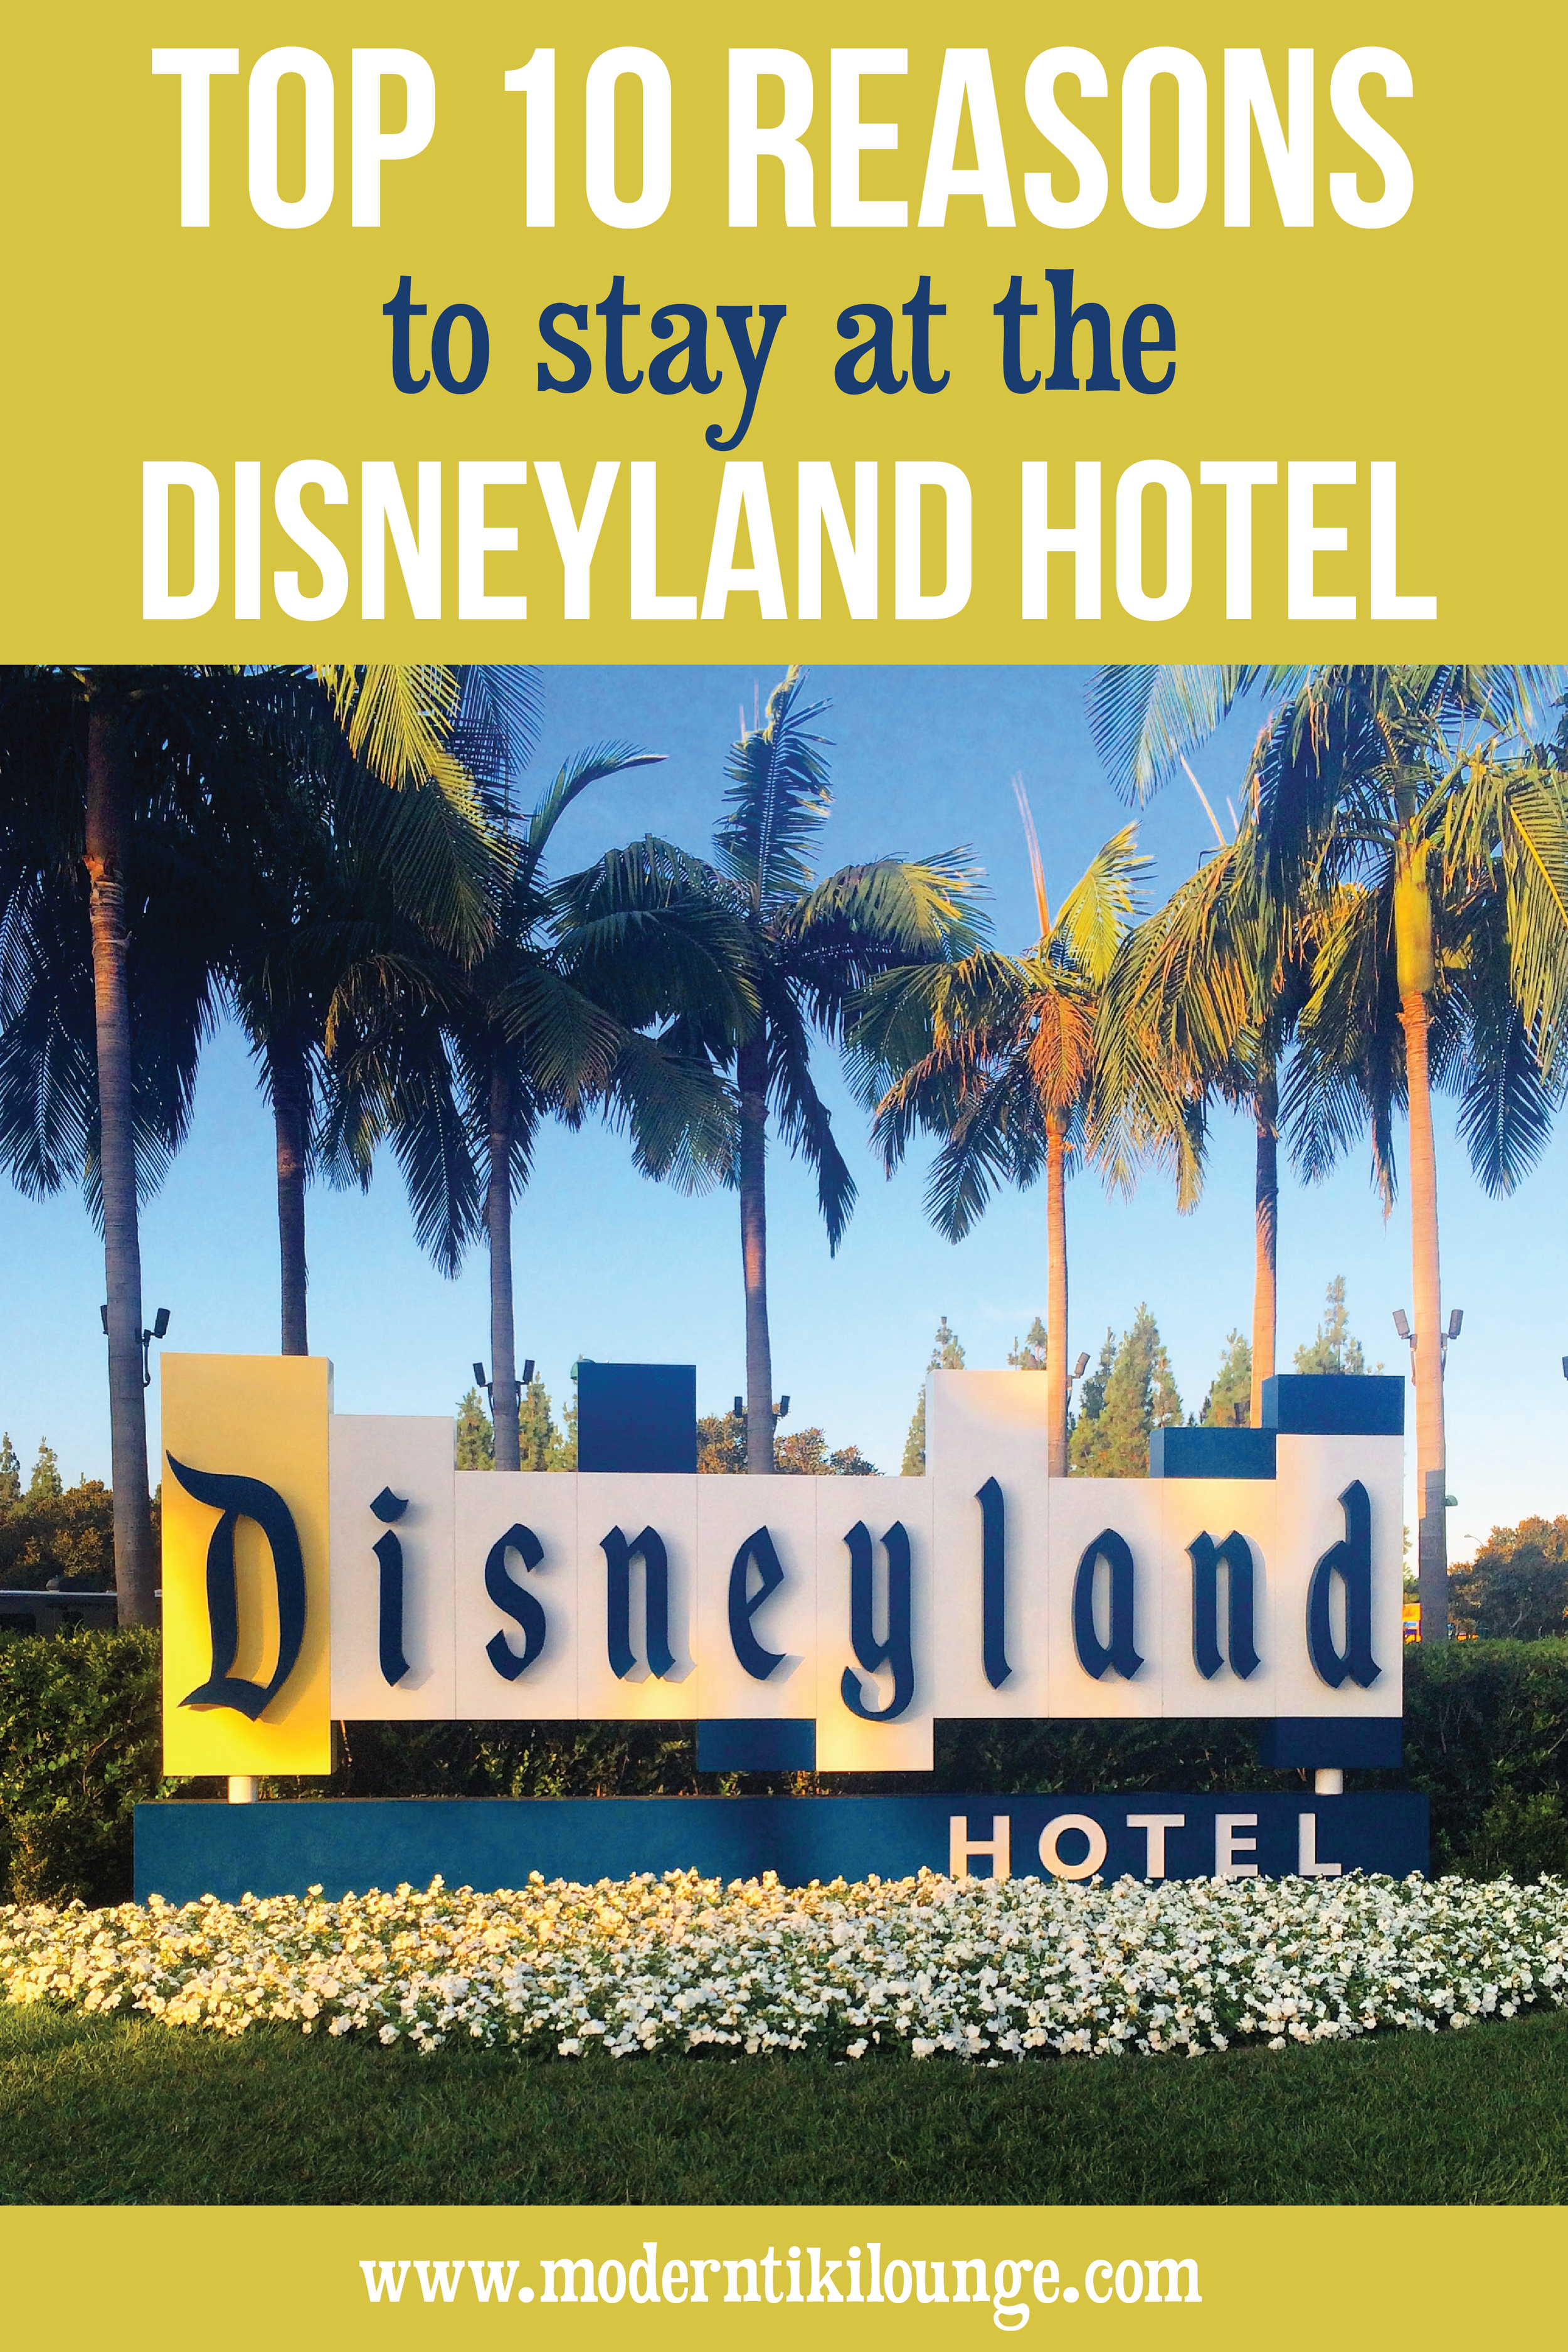 top-10-reasons-to-stay-at-the-disneyland-hotel.jpg